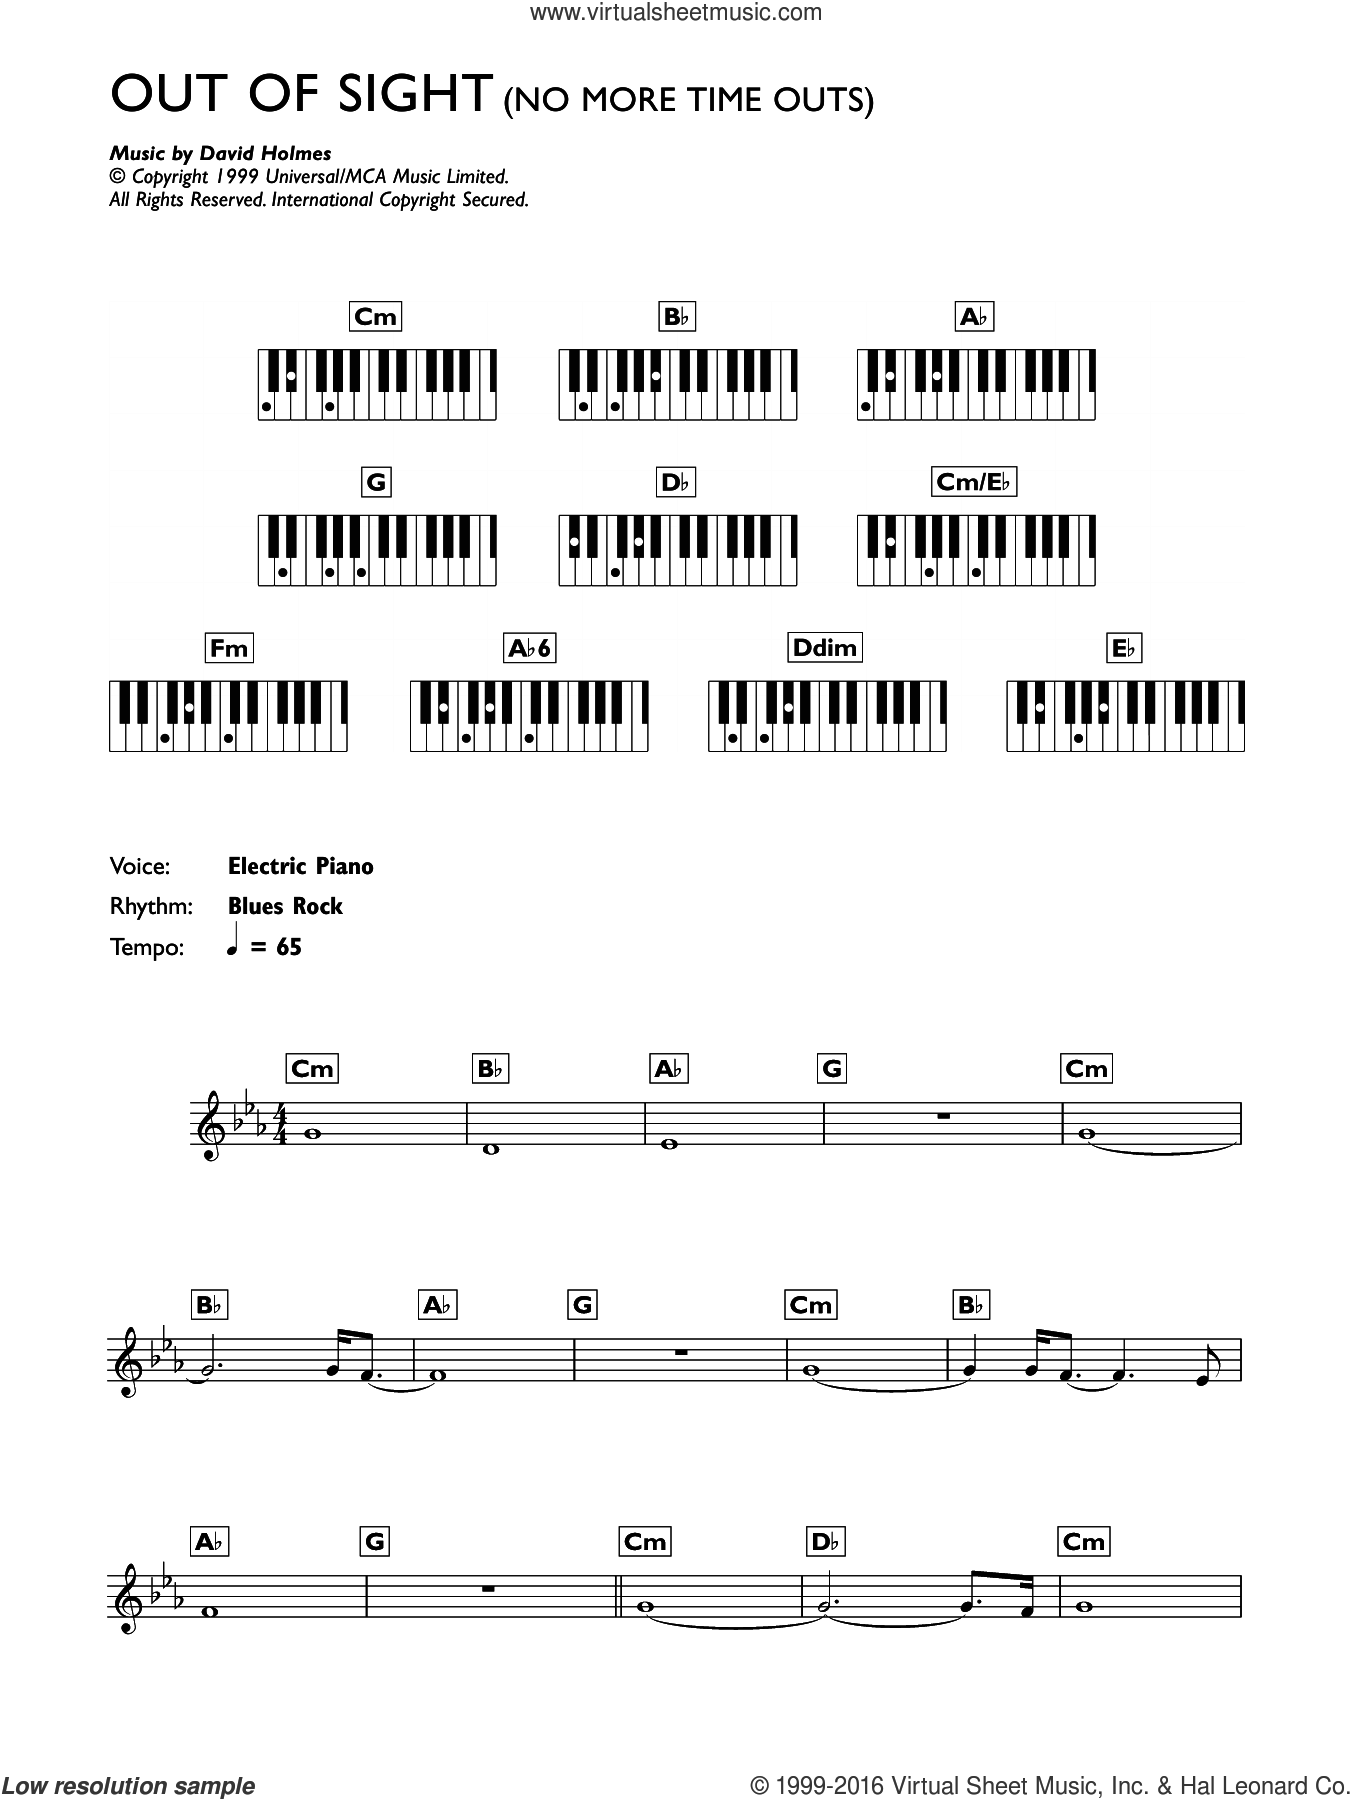 No More Time Outs (from Out Of Sight) sheet music for piano solo (chords, lyrics, melody) by David Holmes. Score Image Preview.